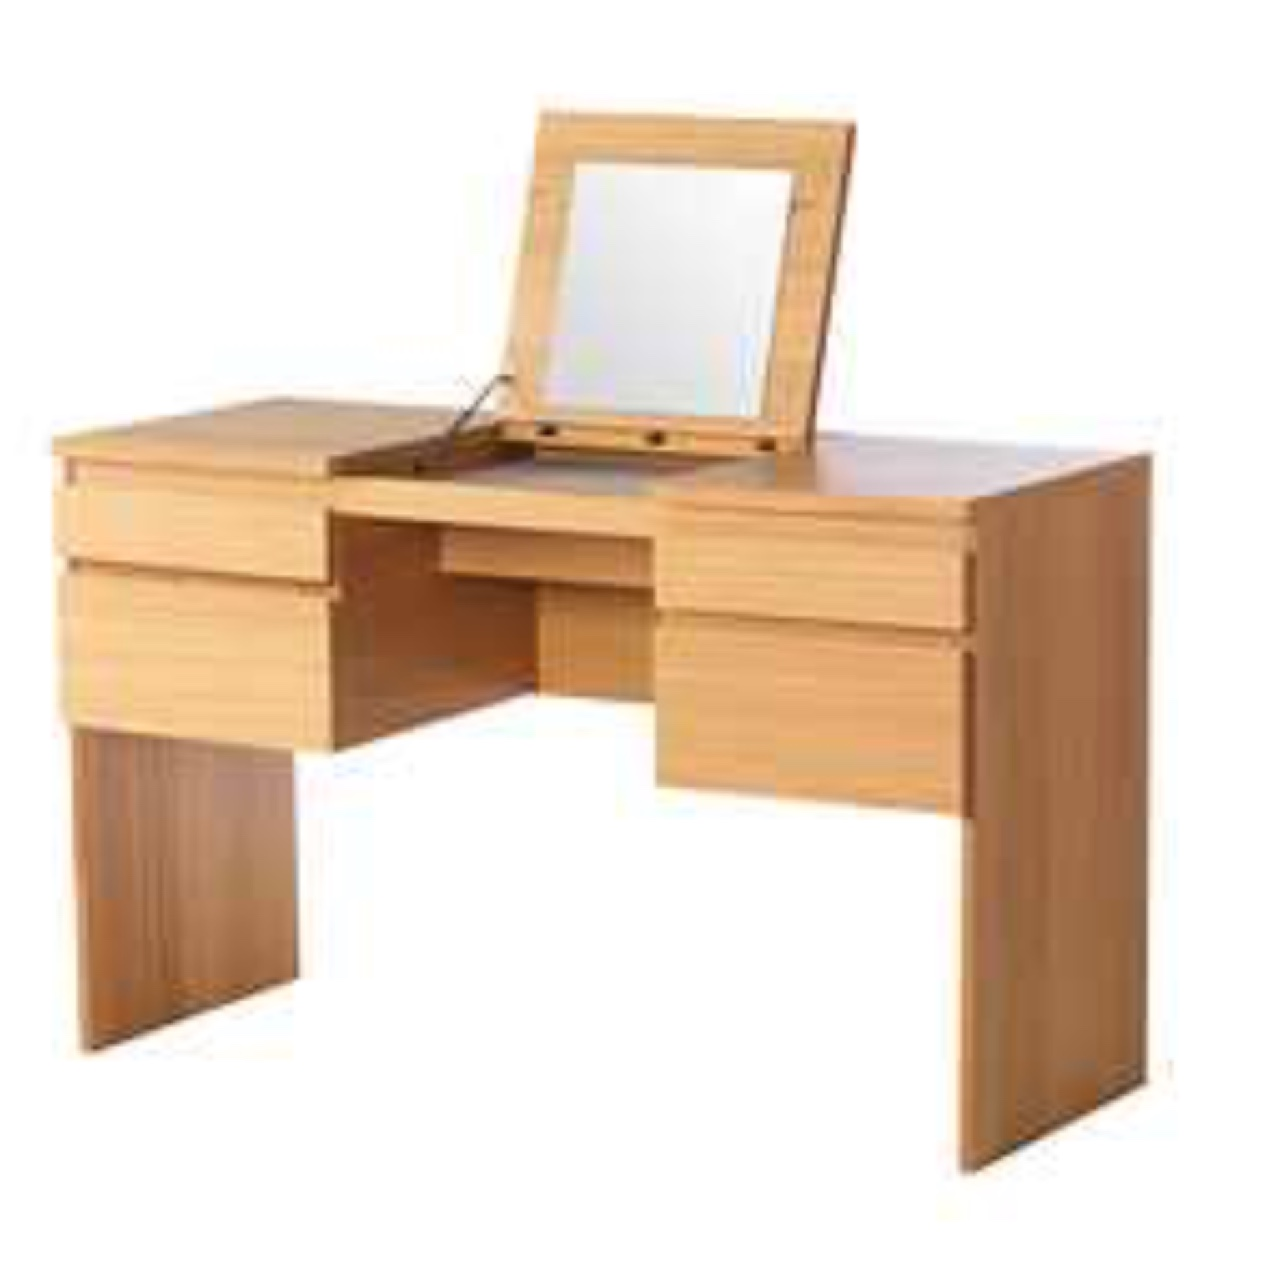 lowest price 0467e afd12 IKEA Ransby dressing table/ desk when lid is closed.... - Depop